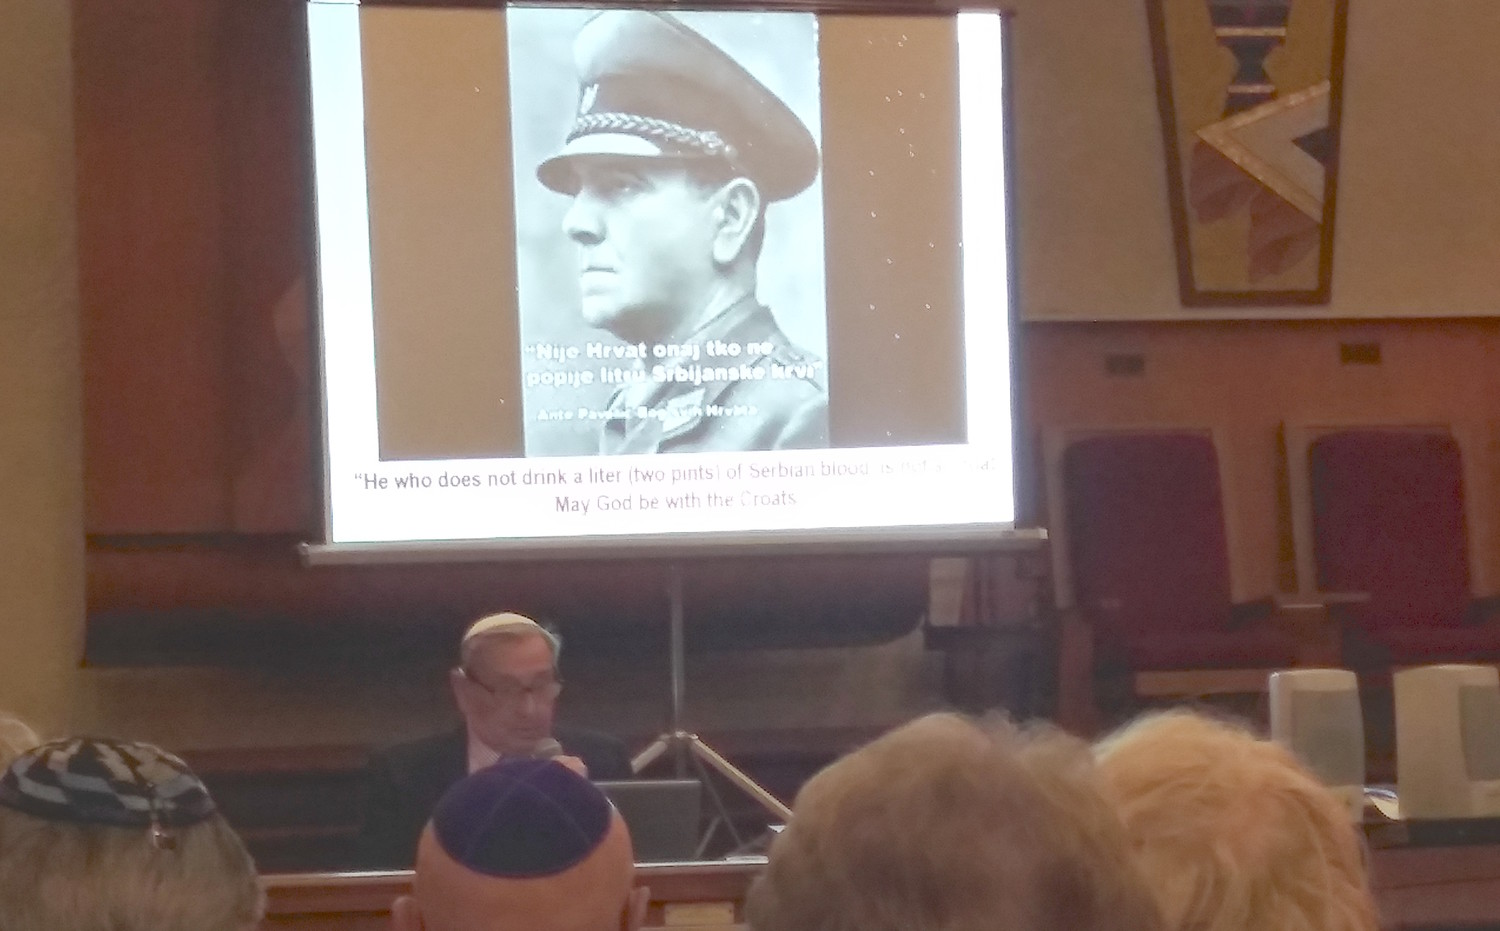 Werner Reich speaks at a Kristallnacht commemoration at the South Baldwin Jewish Center.